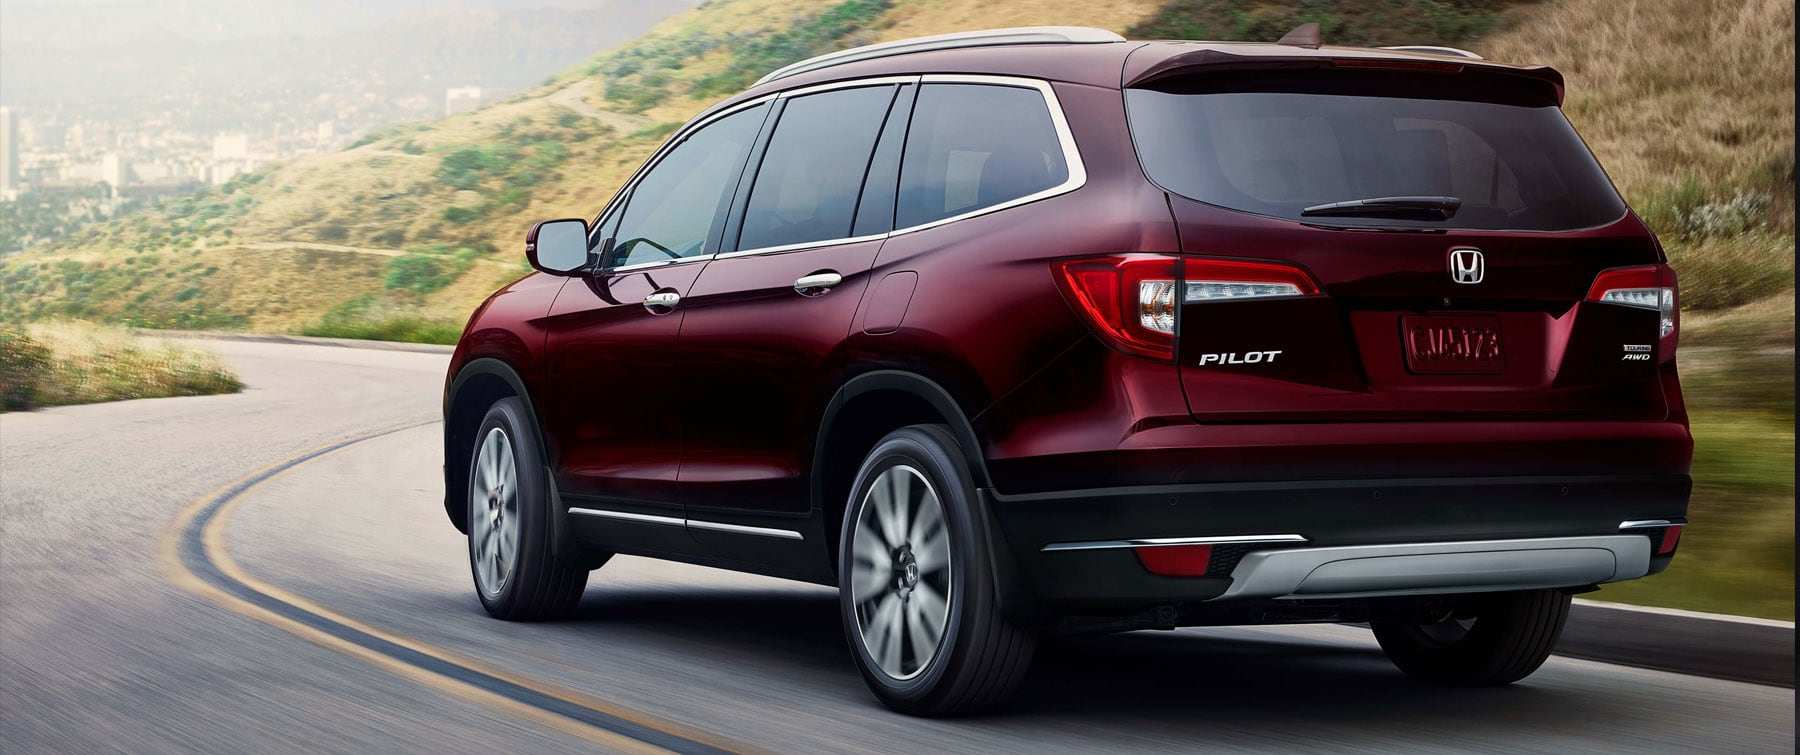 Driver-assistive technologies on the new Honda Pilot